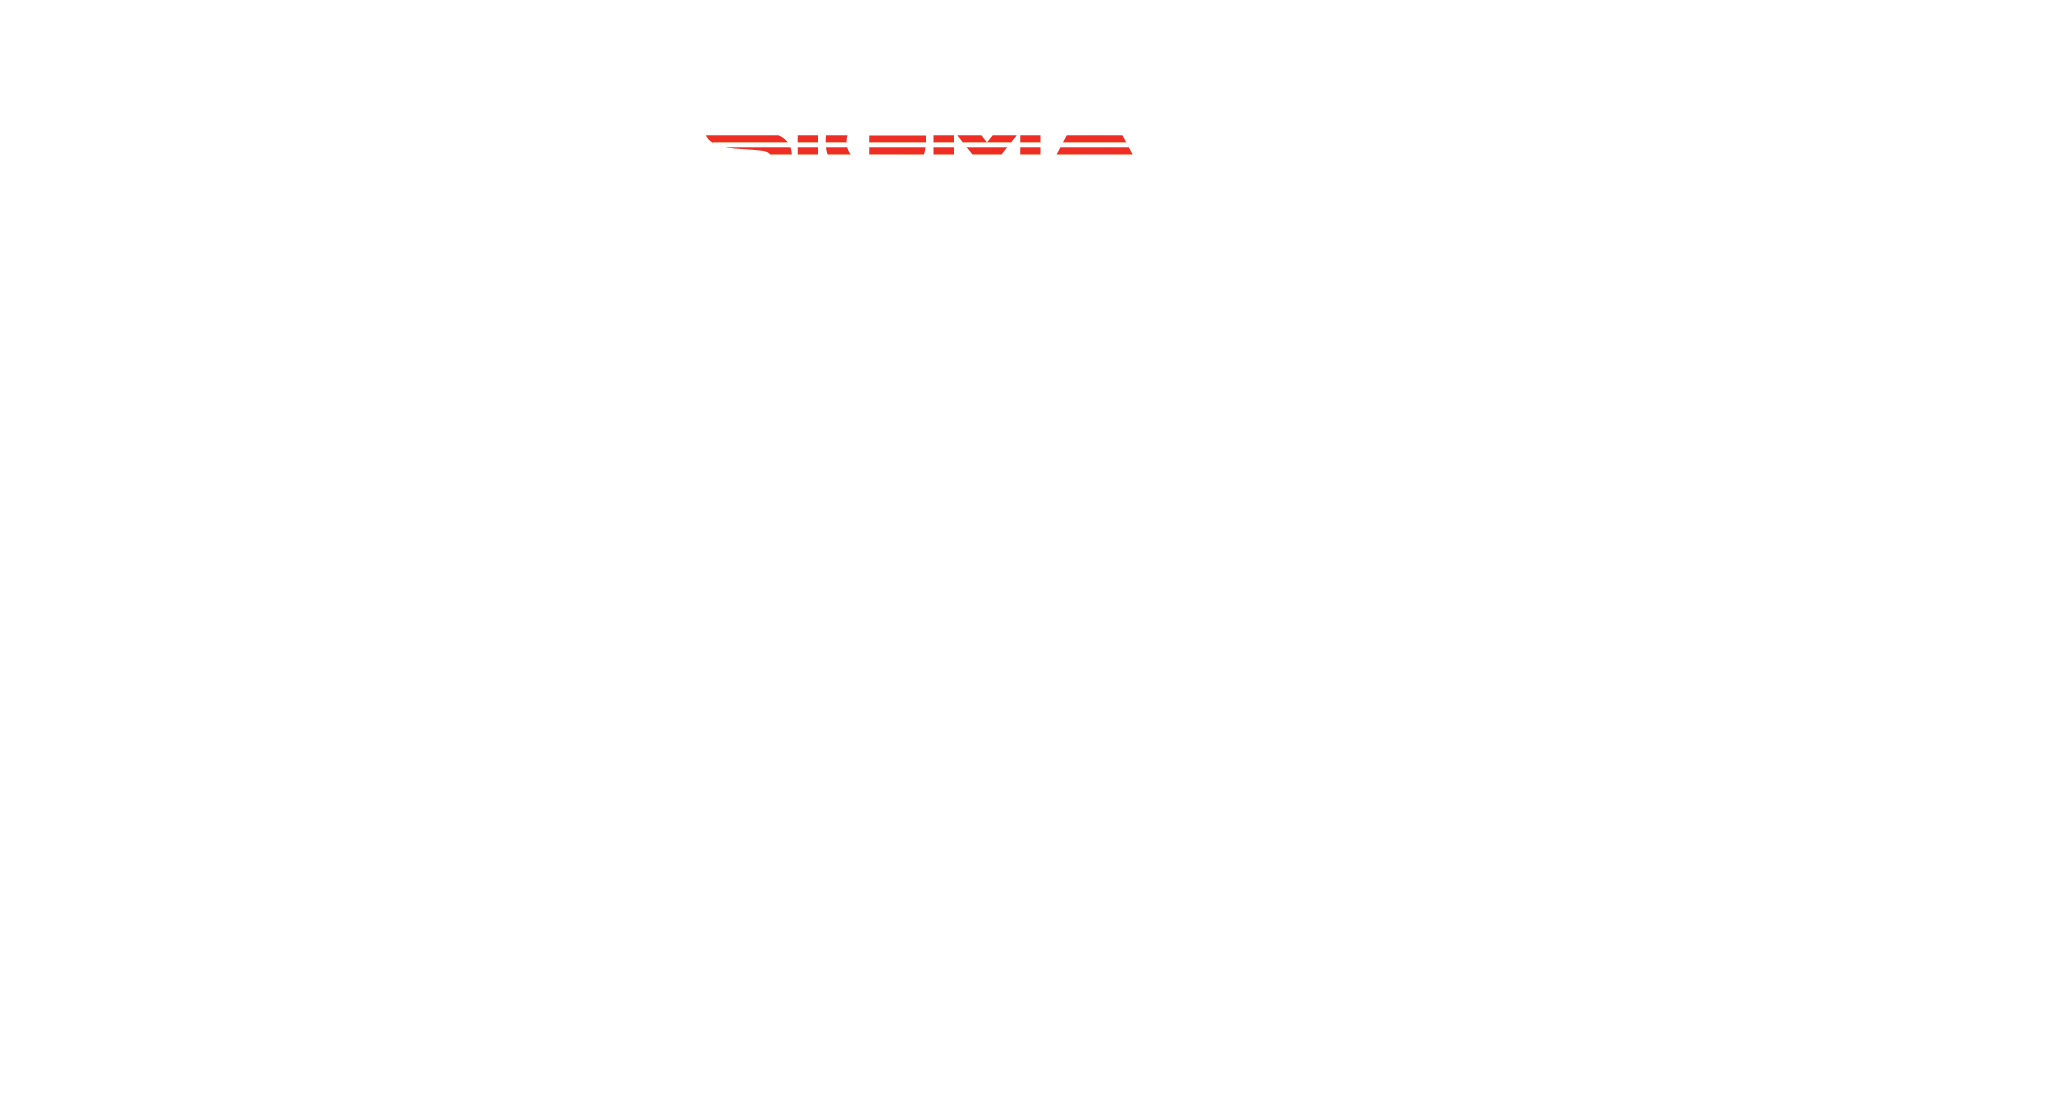 SIGMA 2019 Annual Conference Logo wh